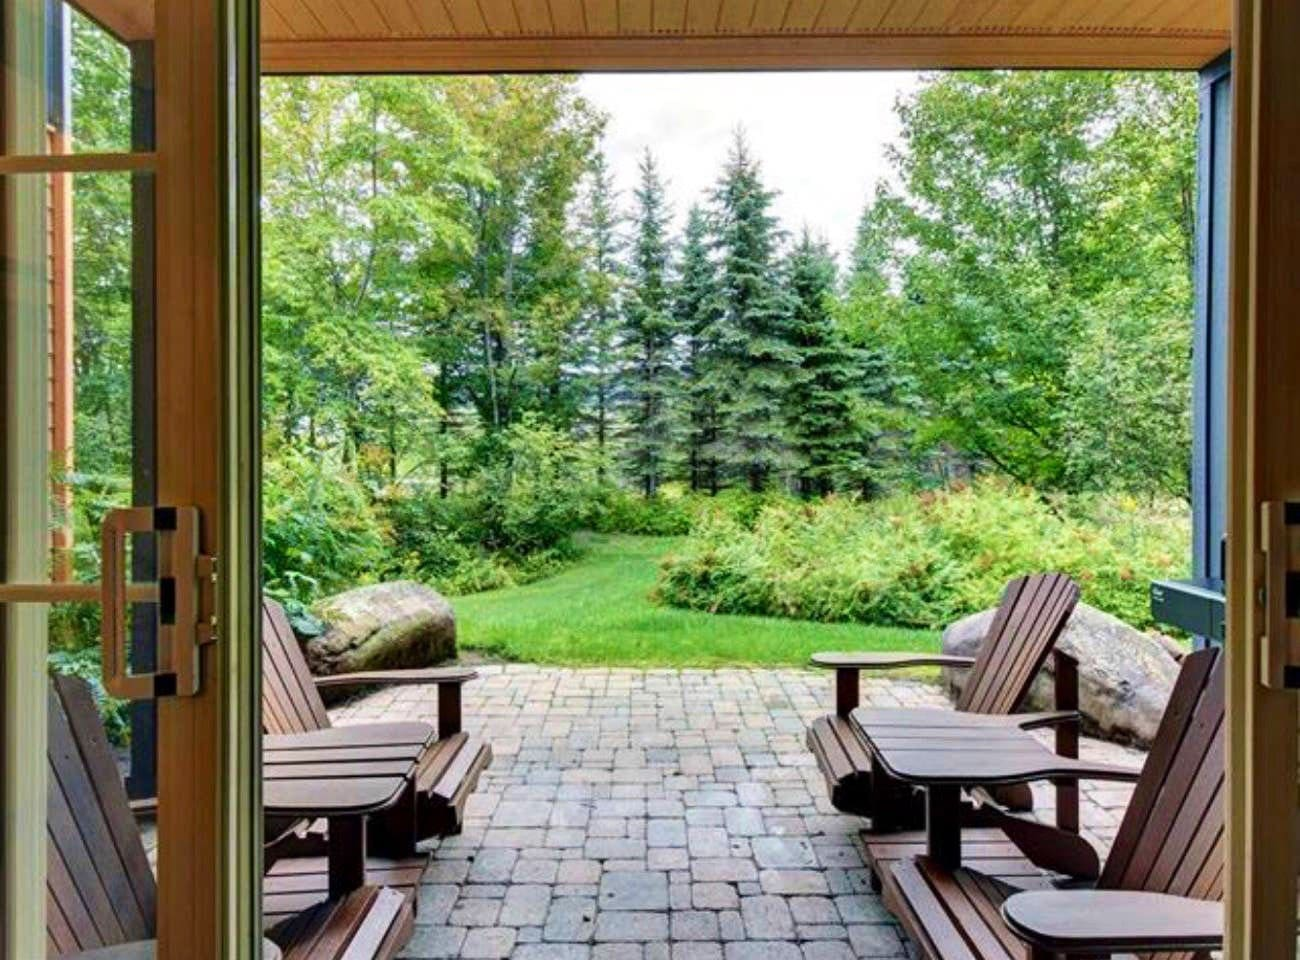 Truly a picturesque view from the living space.  nestled among trees...private & quiet & right at ski out trail. 350 m to where alternate trails meet. Whether you are walking, skiing, cycling, it's all at our doorstep!Grab your water bottle & go.